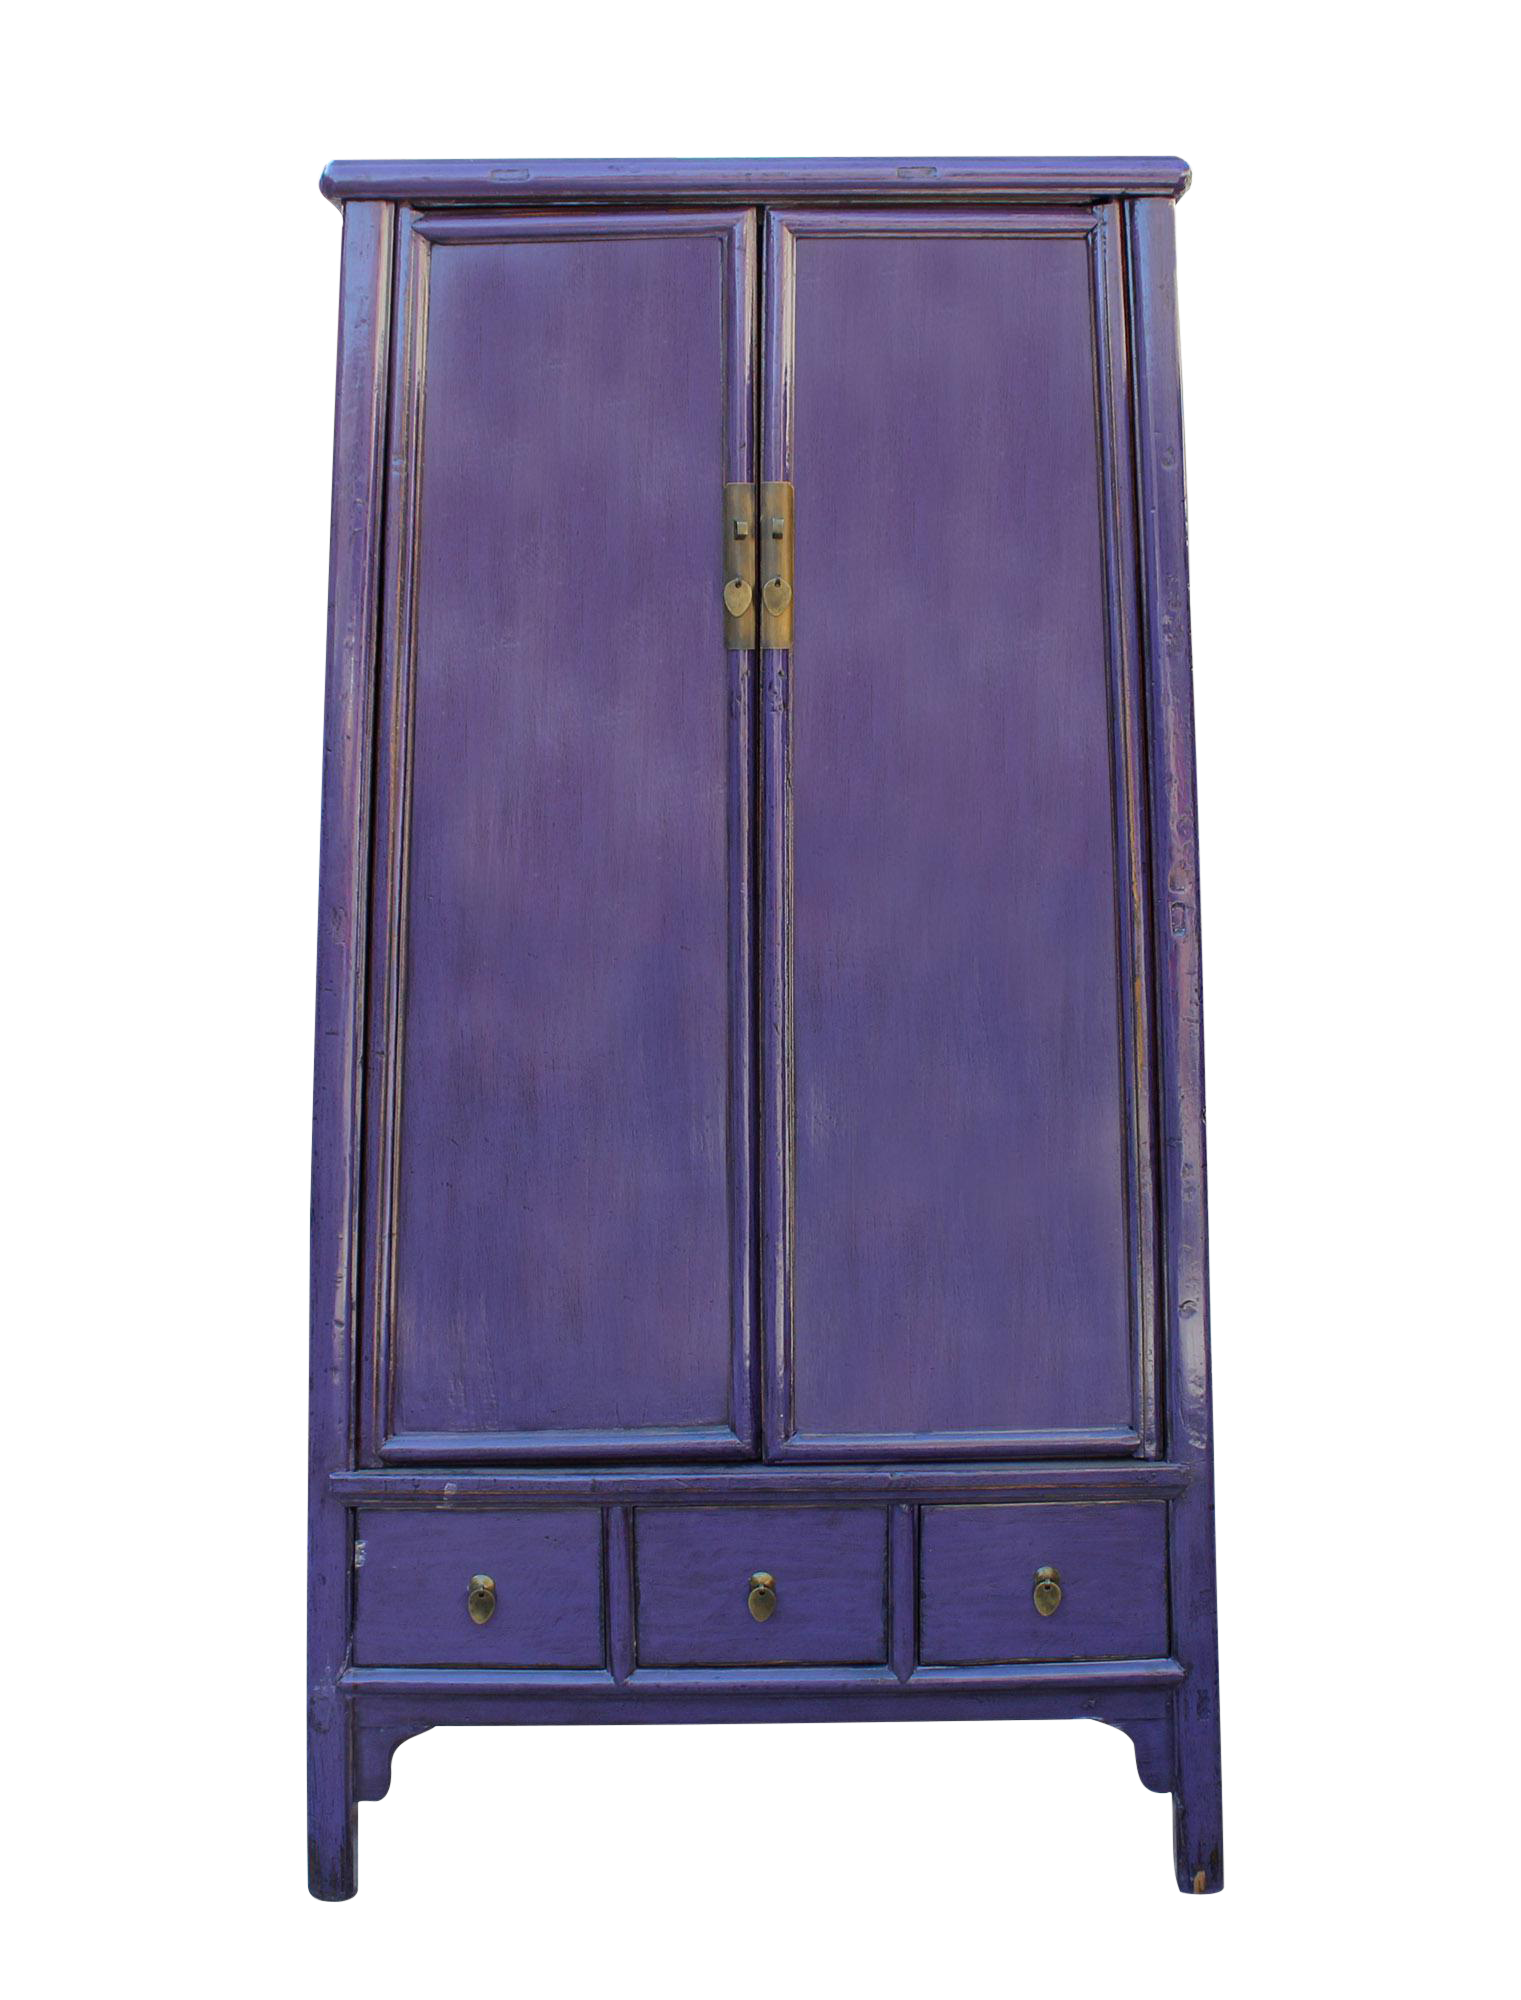 Beau Chinese Distressed Purple Lacquer Ladder Shape Tall Armorie Cabinet